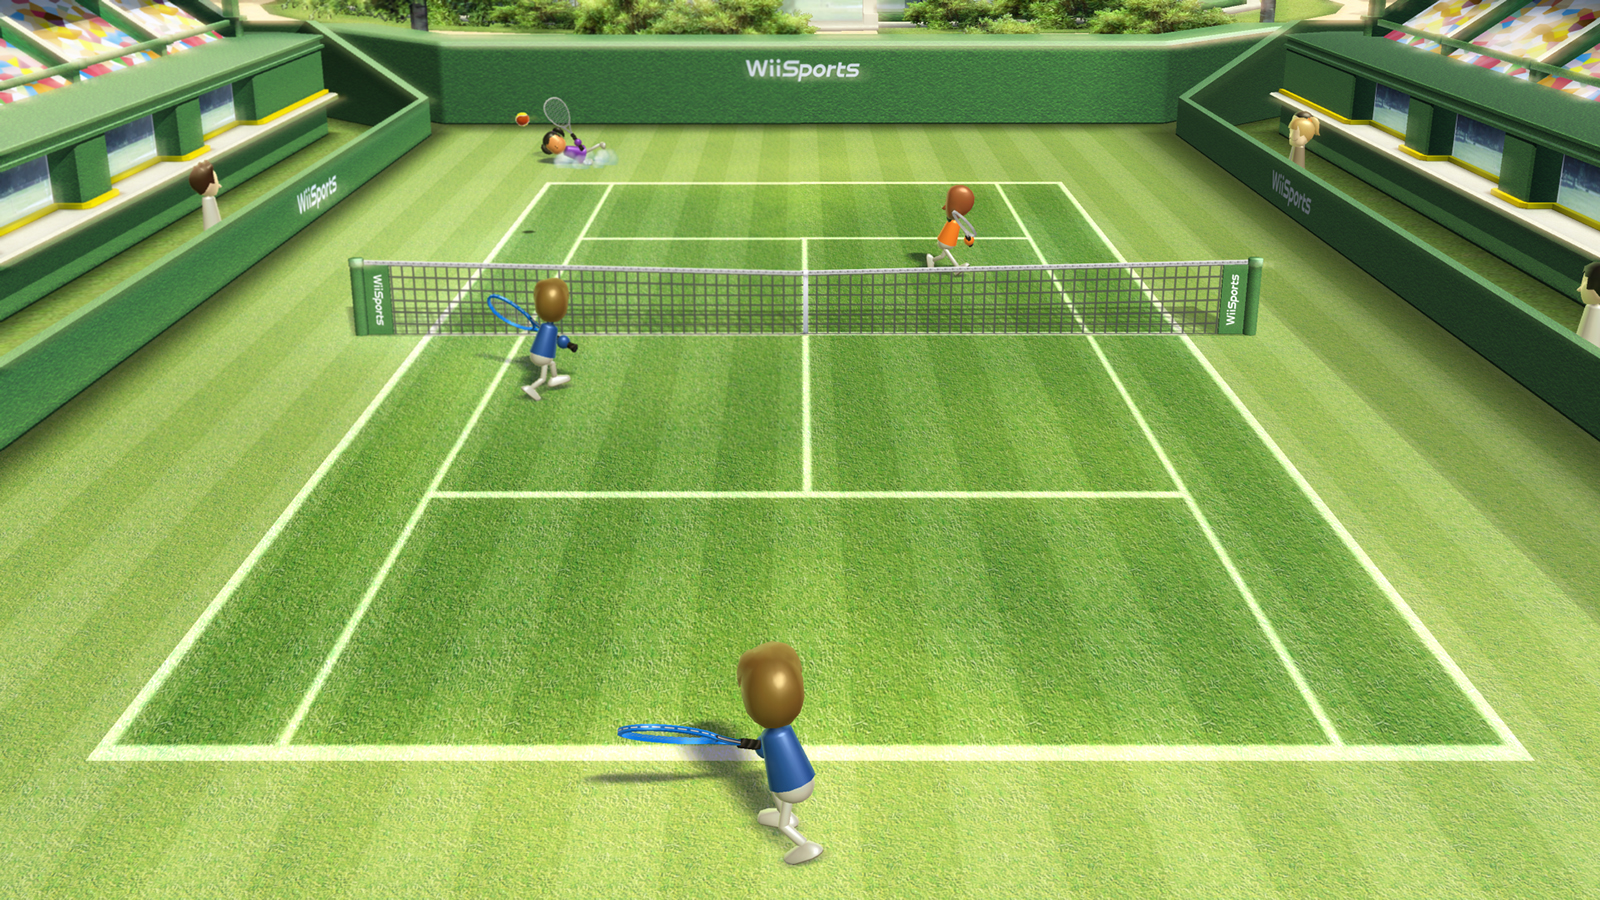 "Wii-Sports ""width ="" 1600 ""height ="" 900 ""srcset ="" https://www.funzen.net/wp-content/uploads/2020/03/1584817565_966_The-ten-games-that-should-reach-Android-TV.jpg 1600w, https: // elandroidelibre. elespanol.com/wp-content/uploads/2016/07/Wii-Sports-450x253.jpg 450w, https://elandroidelibre.elespanol.com/wp-content/uploads/2016/07/Wii-Sports-768x432.jpg 768w, https://elandroidelibre.elespanol.com/wp-content/uploads/2016/07/Wii-Sports-750x422.jpg 750w ""sizes ="" (max-width: 1600px) 100vw, 1600px ""/></p><p>The Wii has been a console that for years has been criticized by many users, but it has still been one of the best-selling consoles in history. One of the keys to this console was that it included a serial game, Wii Sports, which is why many people bought it.</p><p>Wii Sports is a game that with motion sensor controls (like our smartphone)<strong> can entertain people of any age for hours</strong>. Even Apple with its TV has been encouraged to make a version of this game, and it is not for less, since it is the perfect title for when you have guests.</p><h2>Oceanhorn</h2><p><img class="